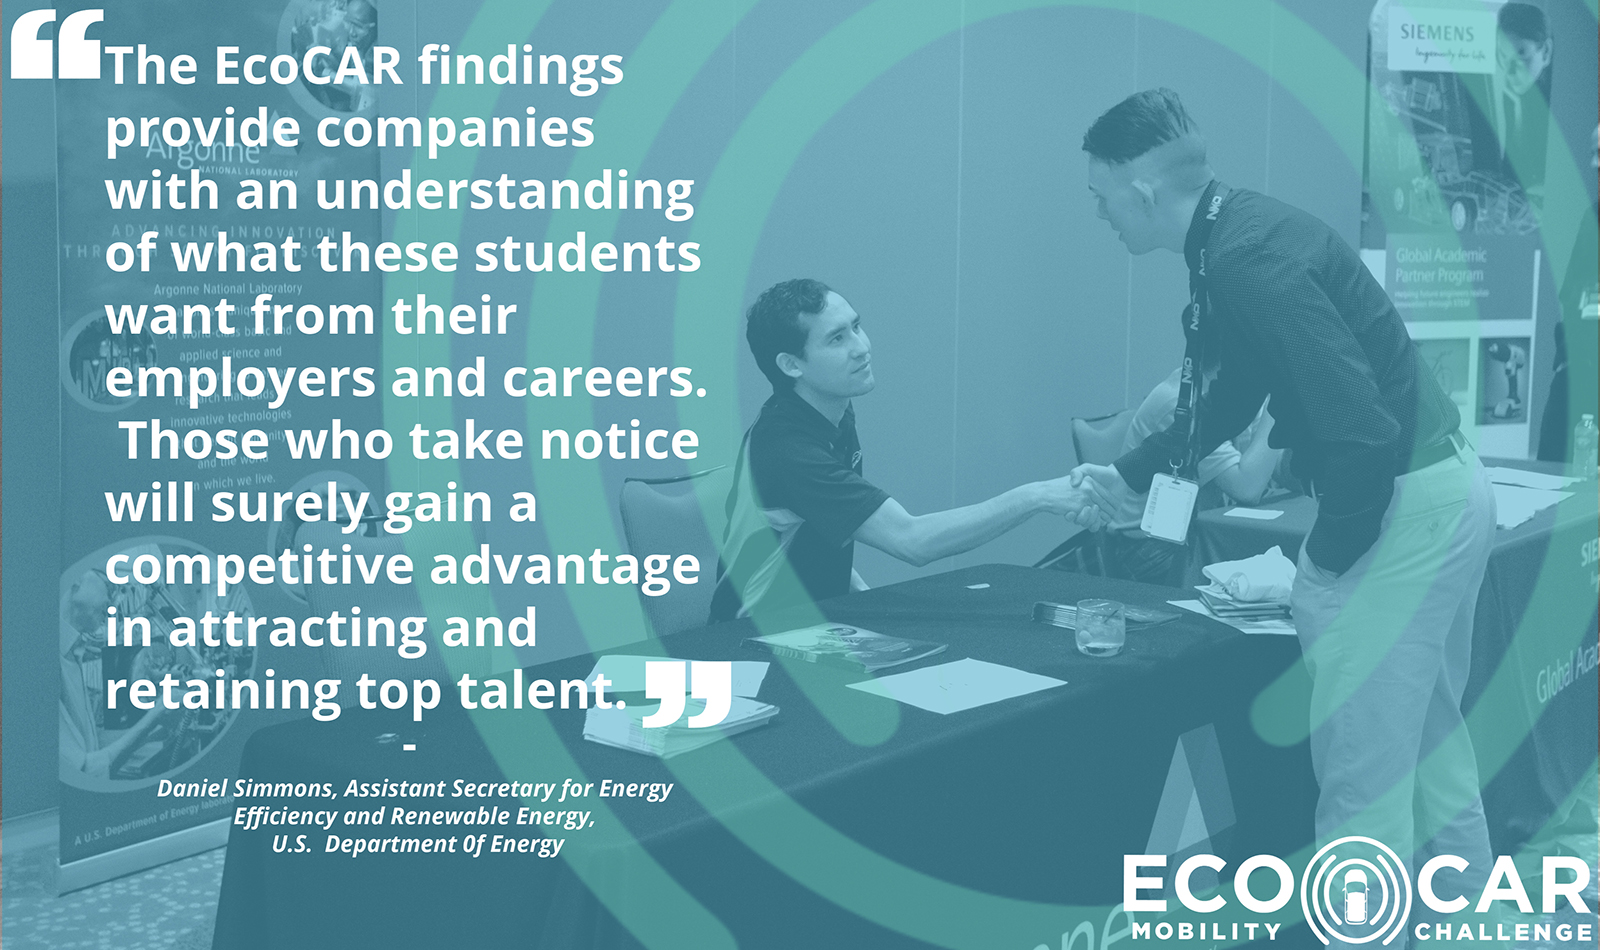 The EcoCAR findings provide companies with an understanding of what these students want from their employers and careers.